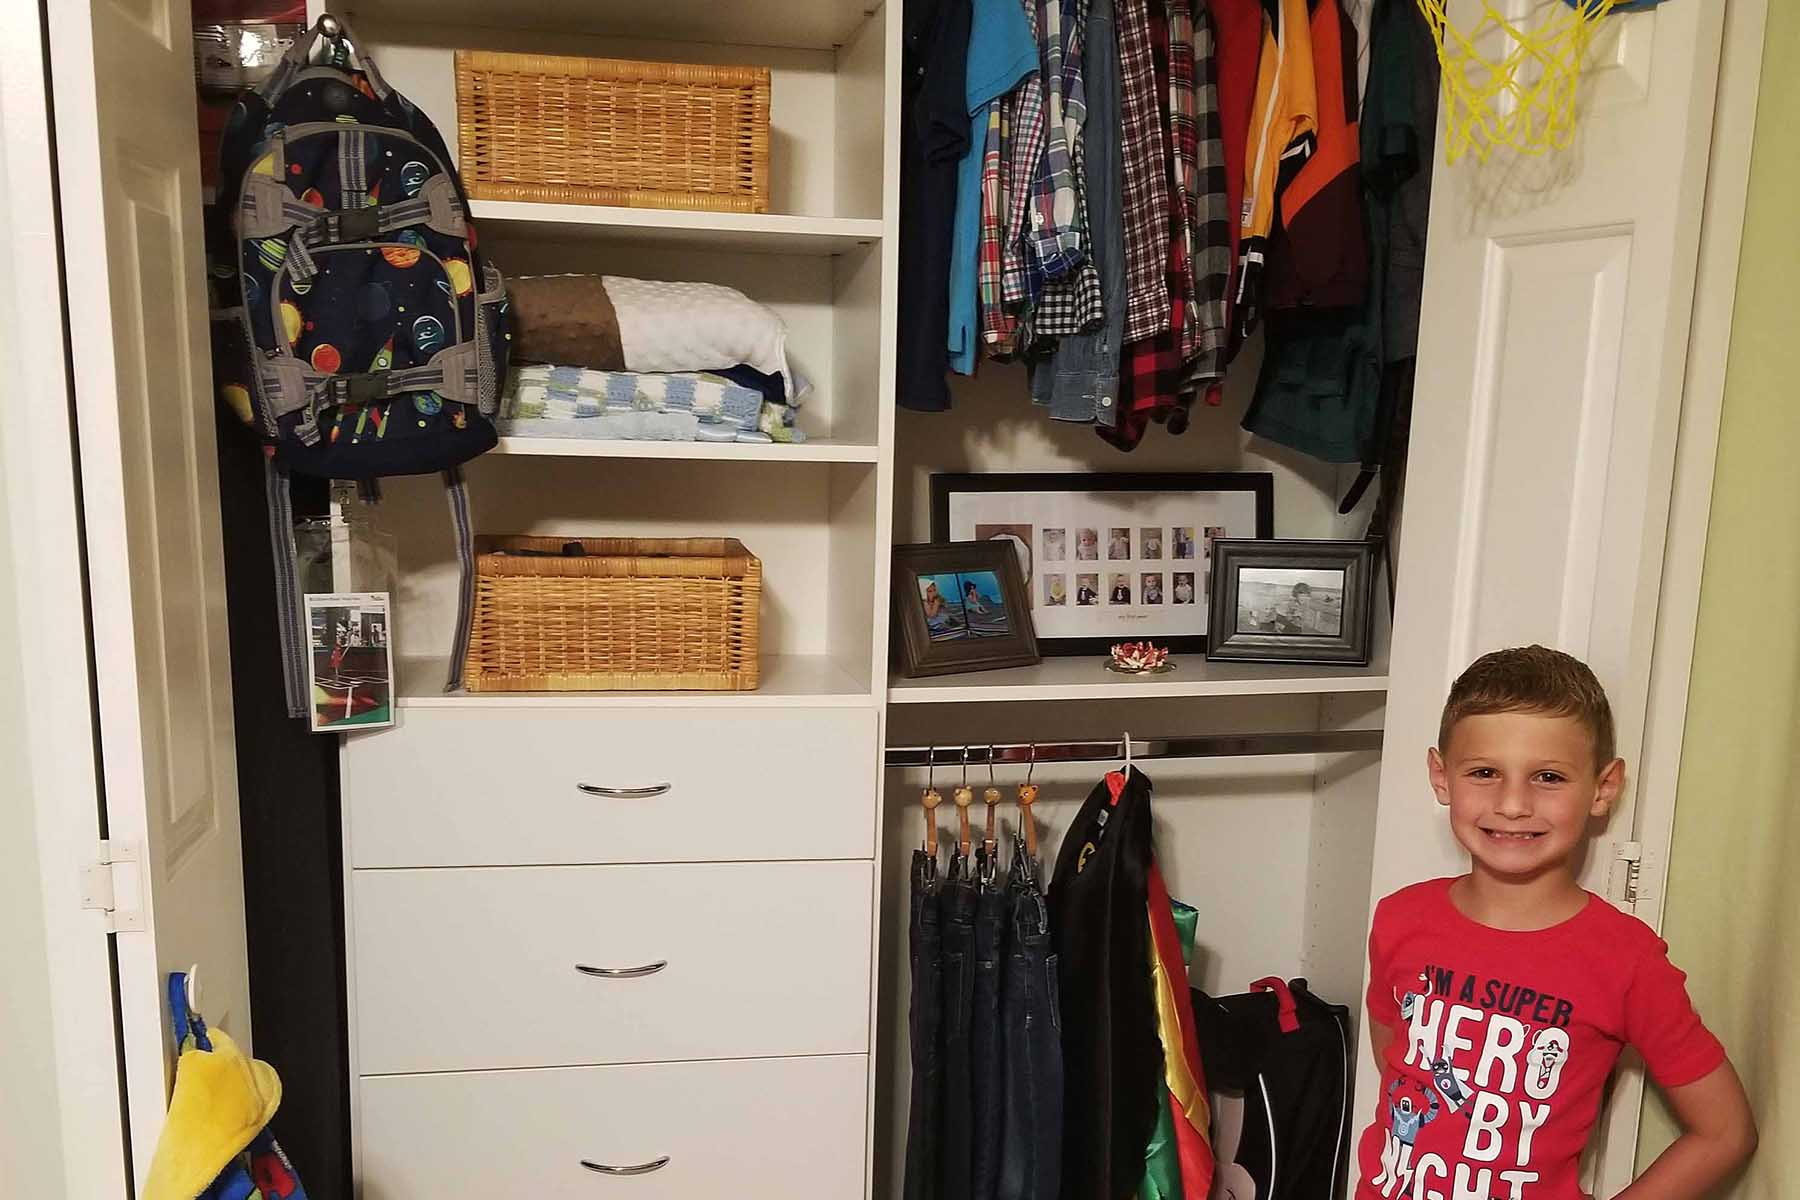 How Do You Get Your Family Onboard With Keeping Your Home Organized?